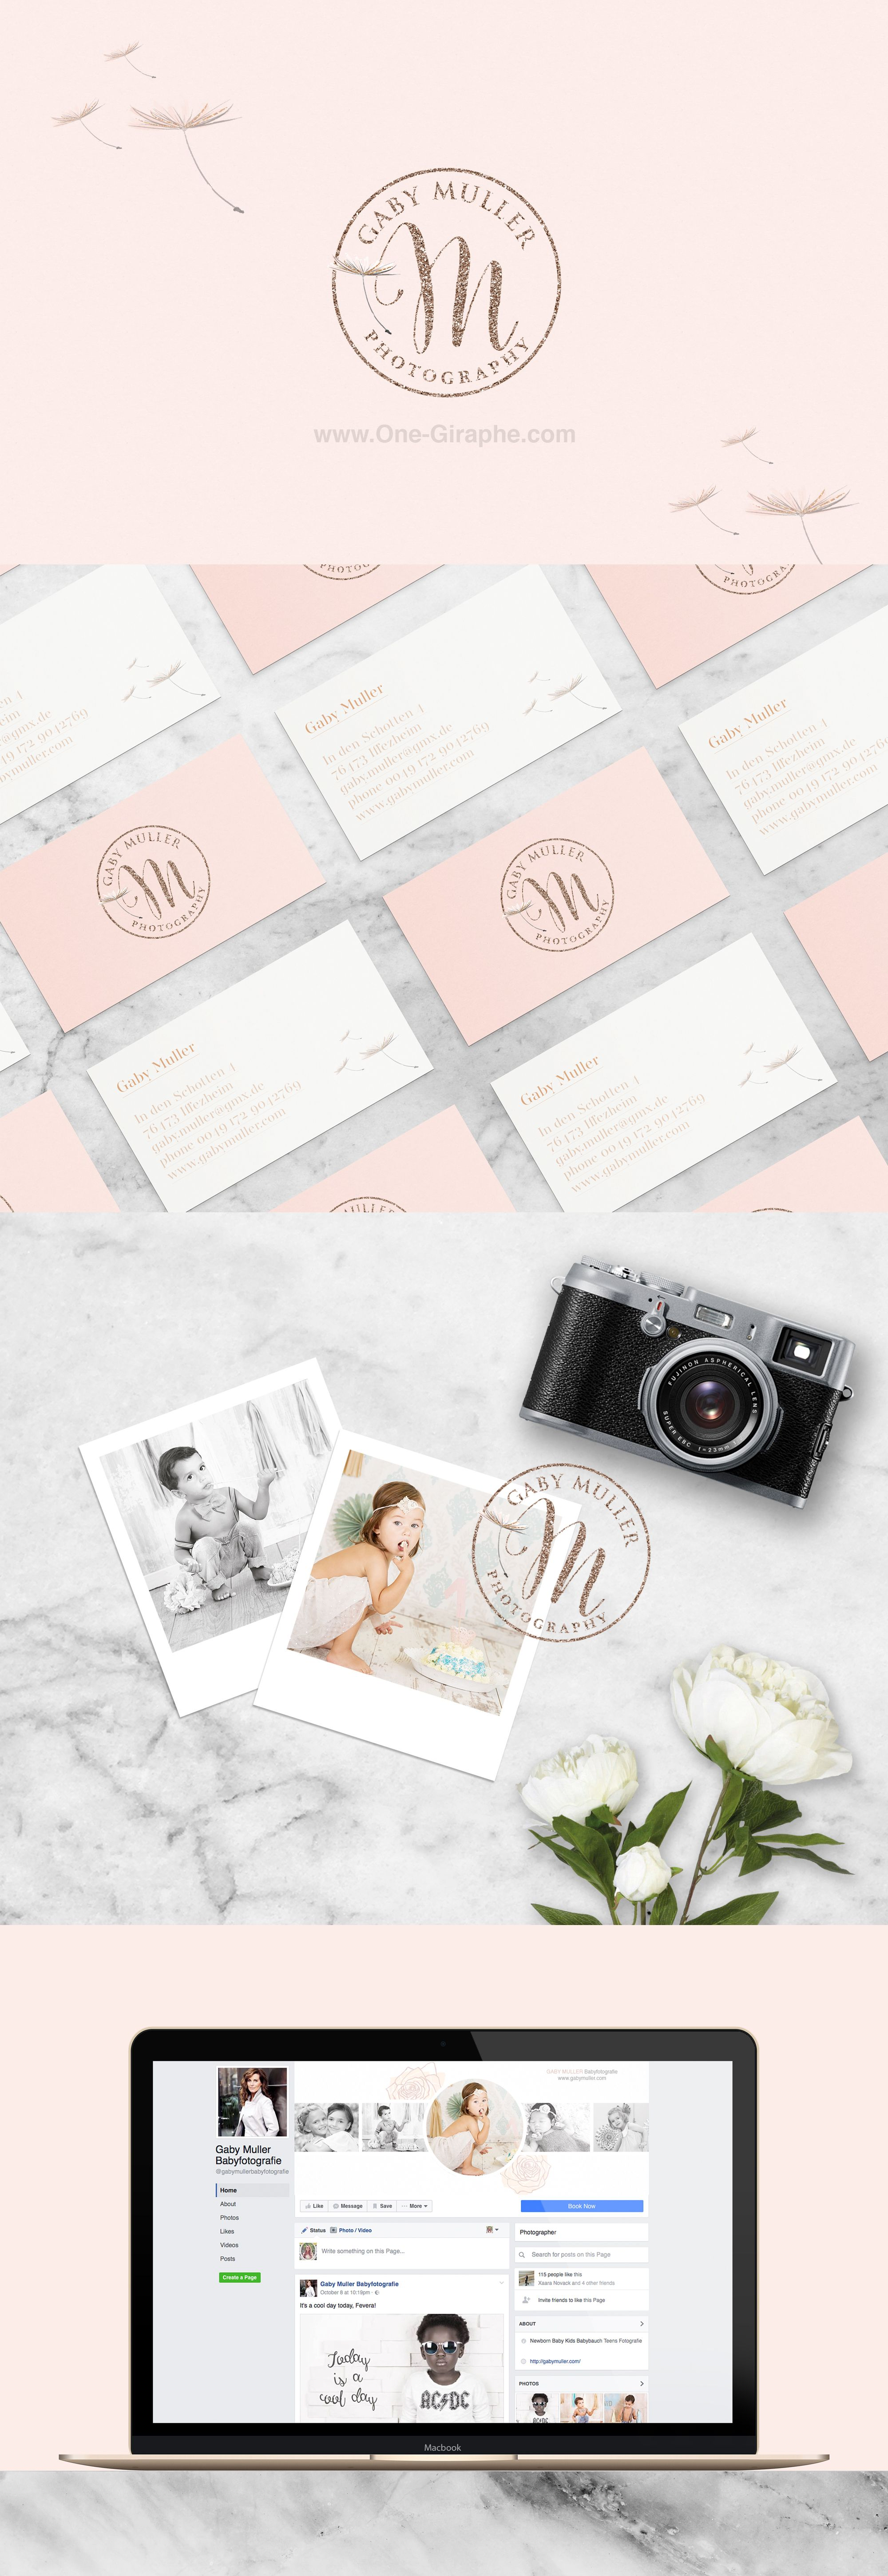 Gaby muller photography brand identity brandidentity logo logodesign photographer also pin by onegiraphe design on portfolio rh pinterest